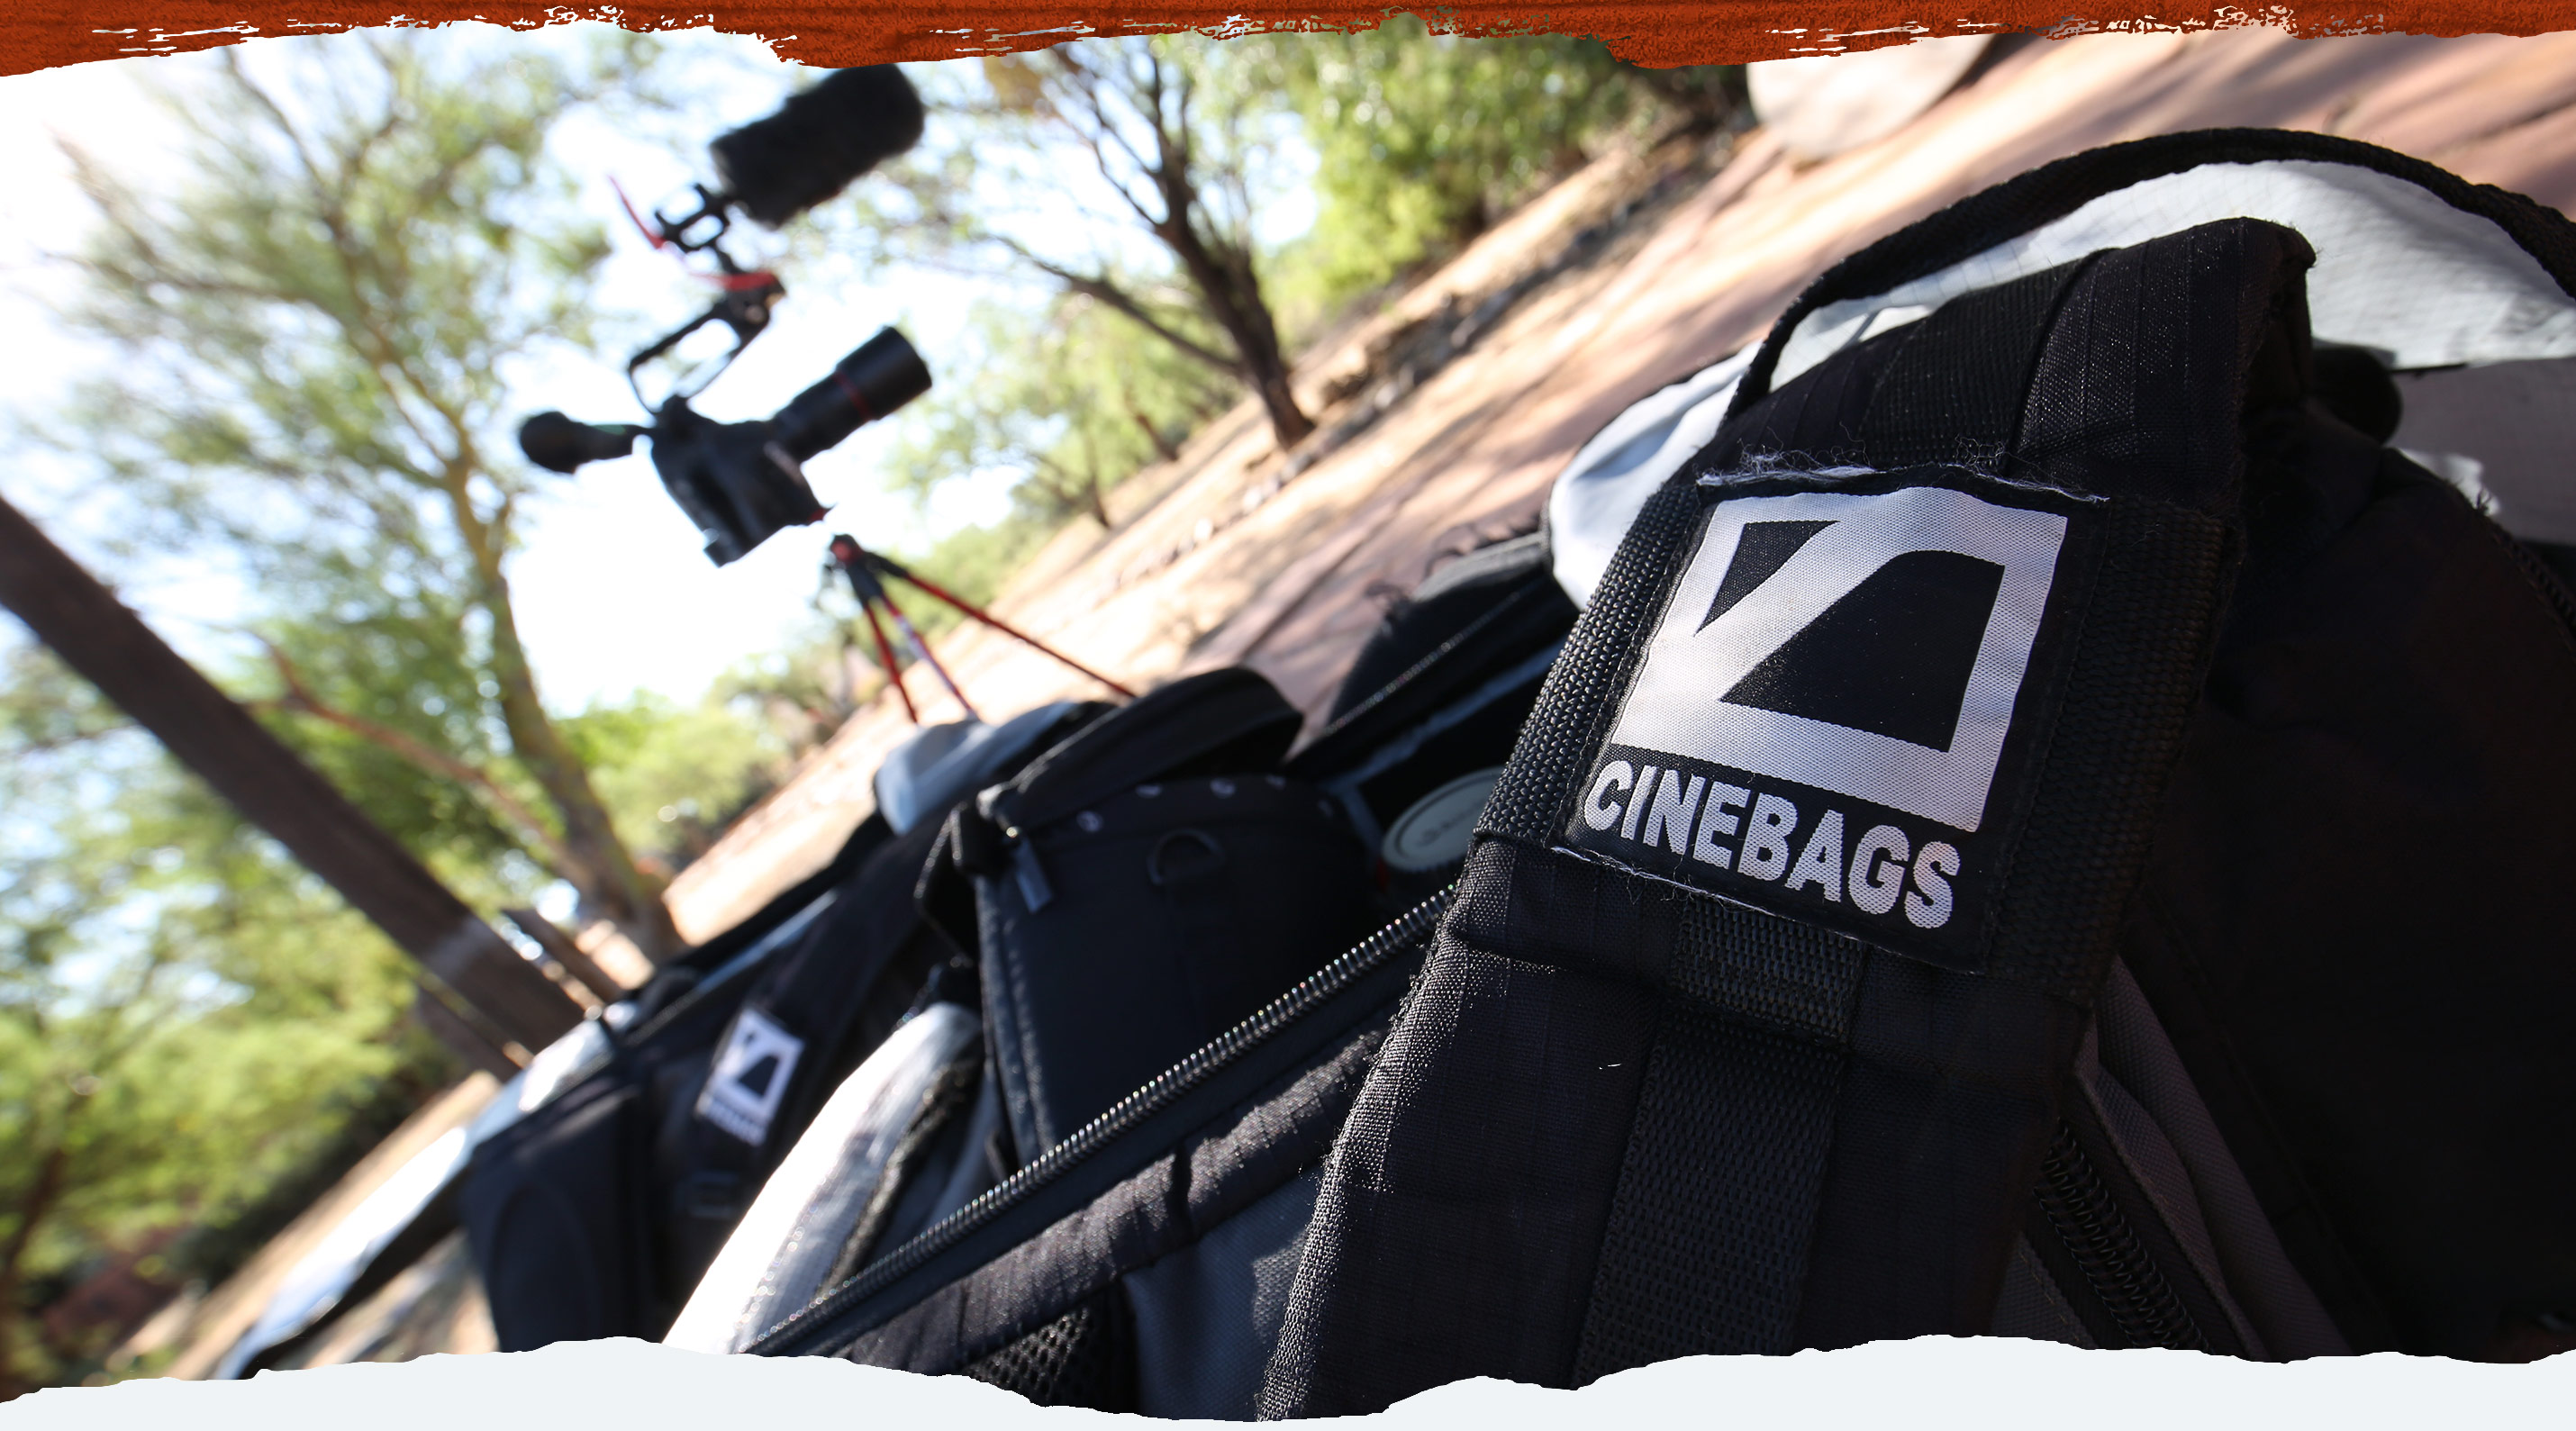 Cinebags - Coyote Peterson Sponsor